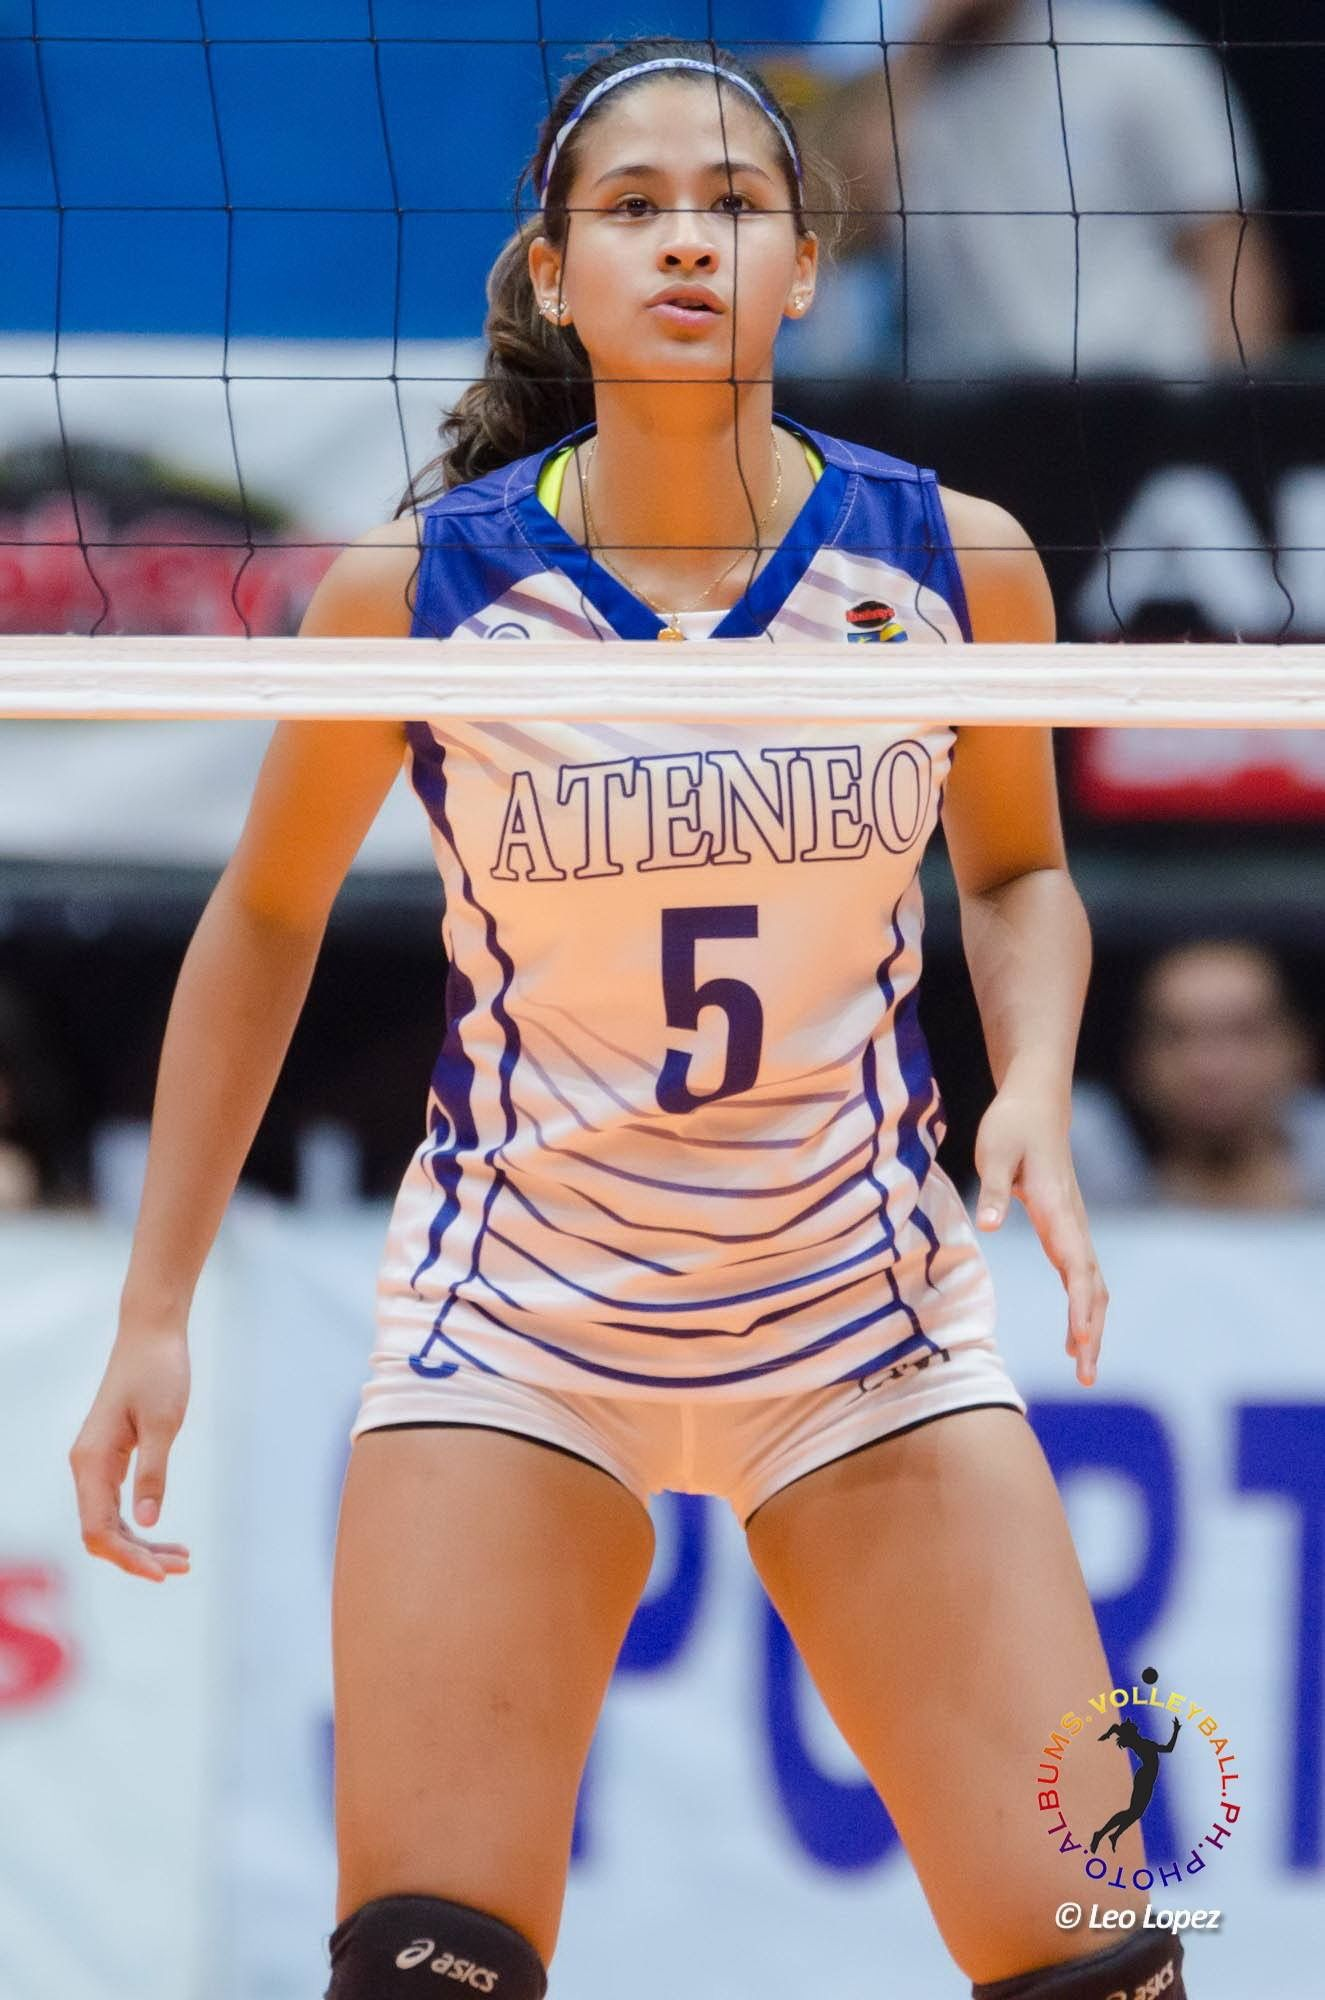 Pin By Jimmy Mariano On Philippine Volleyball Players Volleyball Players Sports Volleyball